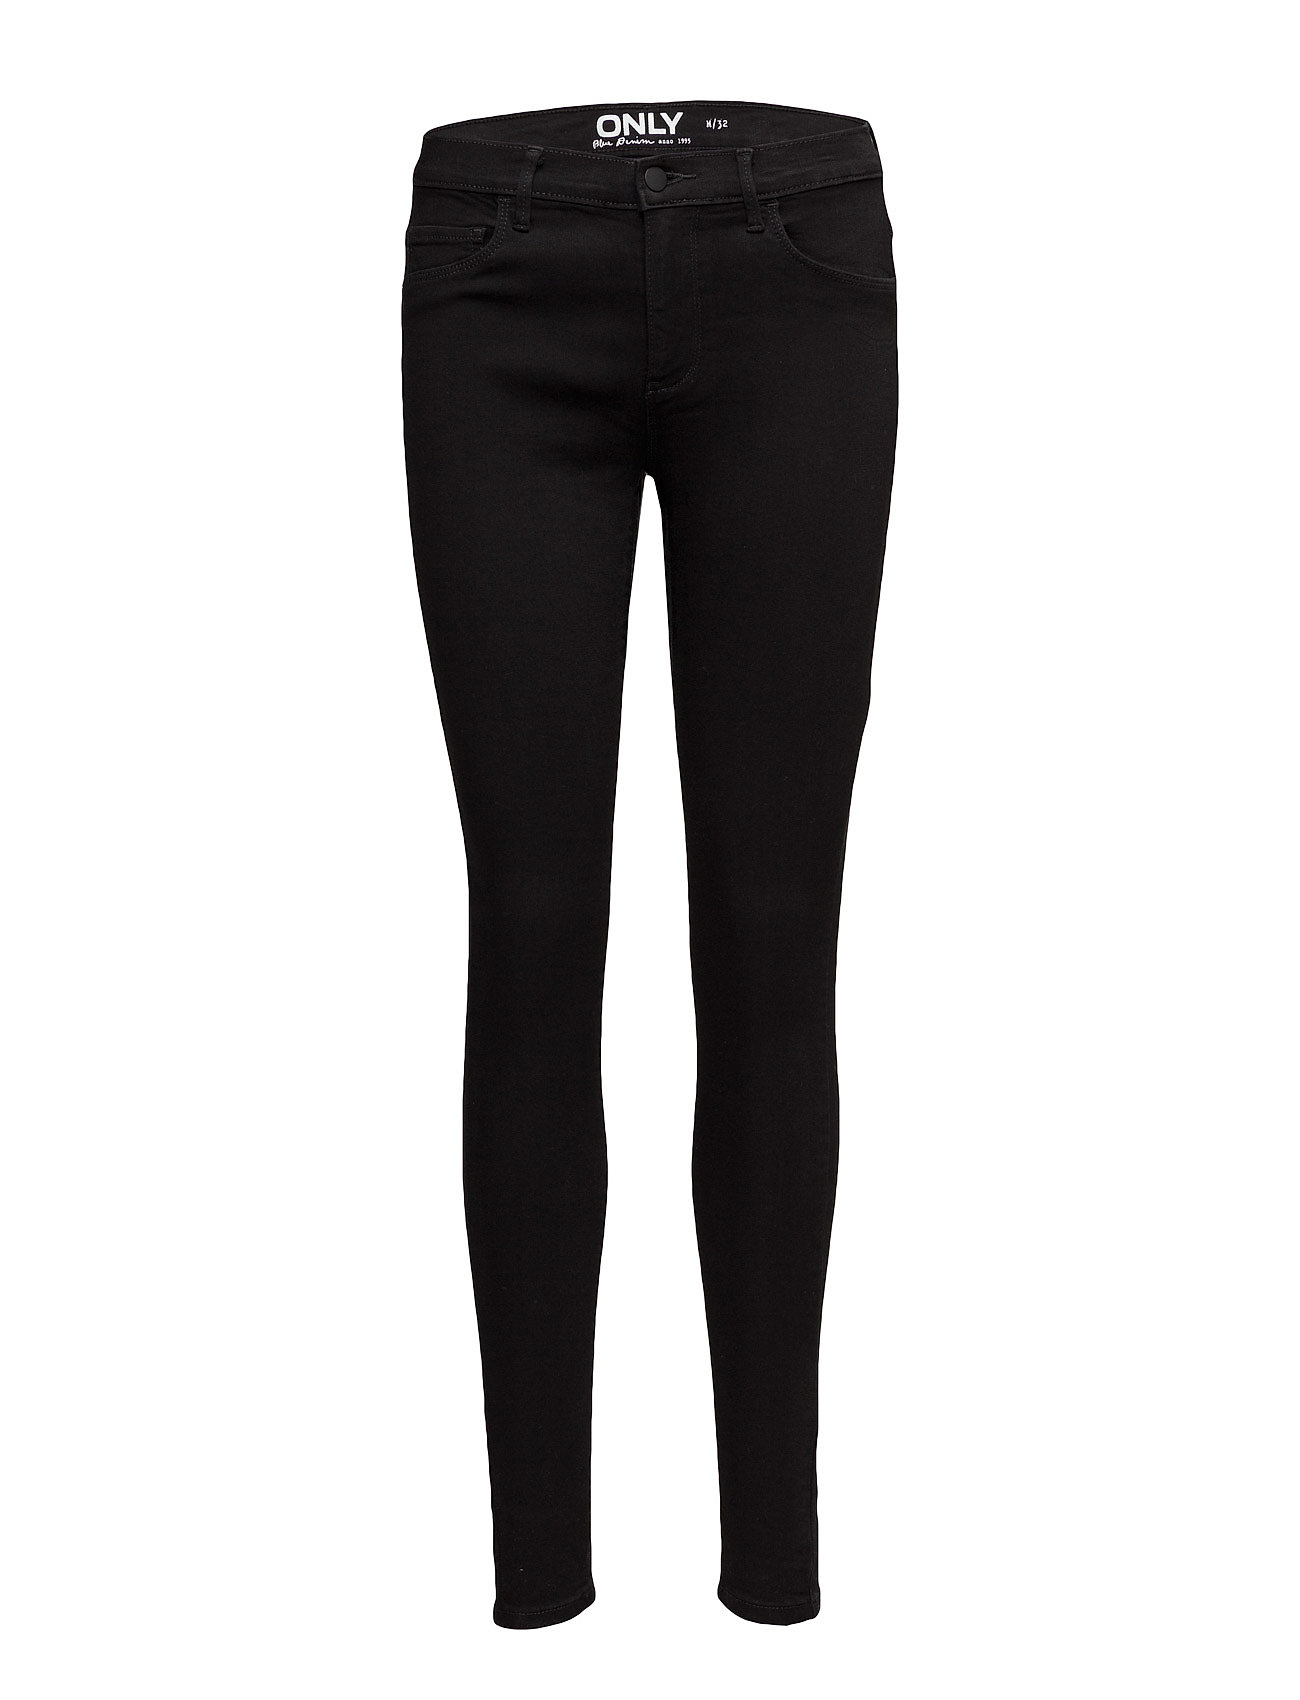 1362be7c Onlrain Reg Skinny Jeans Cry6060 Noos (Black Denim) (£22) - ONLY ...